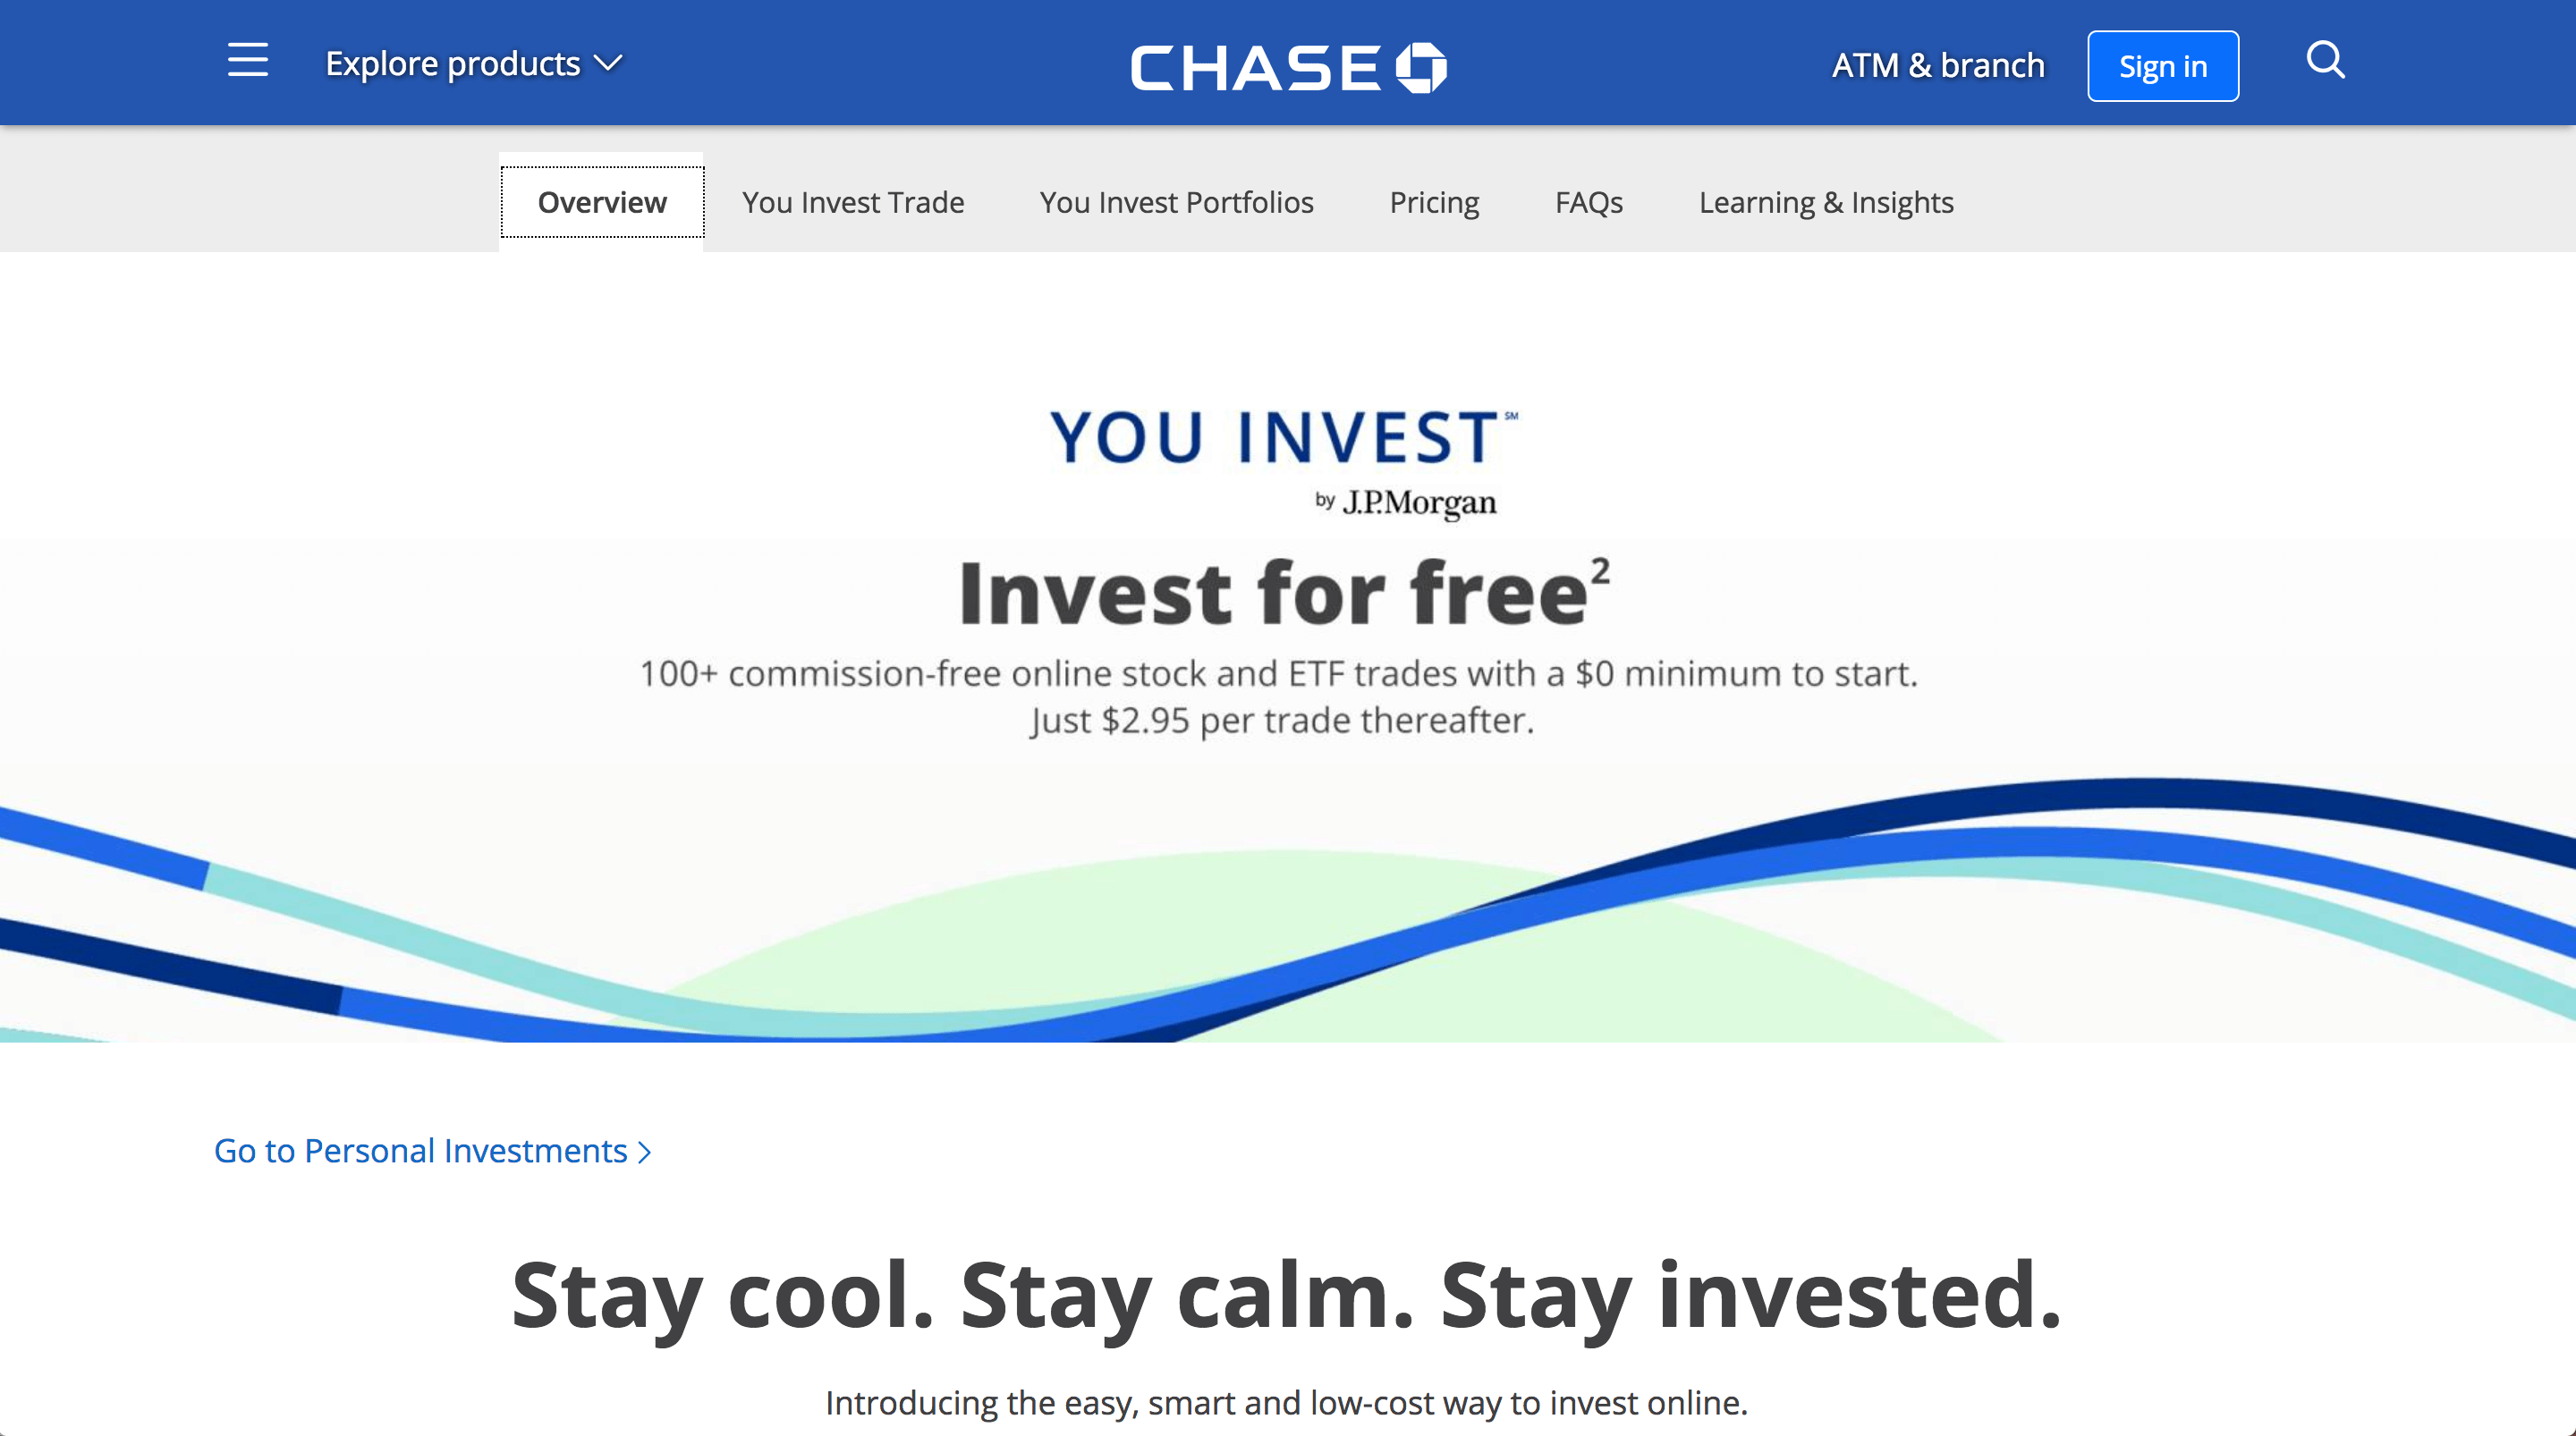 Chase You Invest App Review 2018 | Should You Use It?